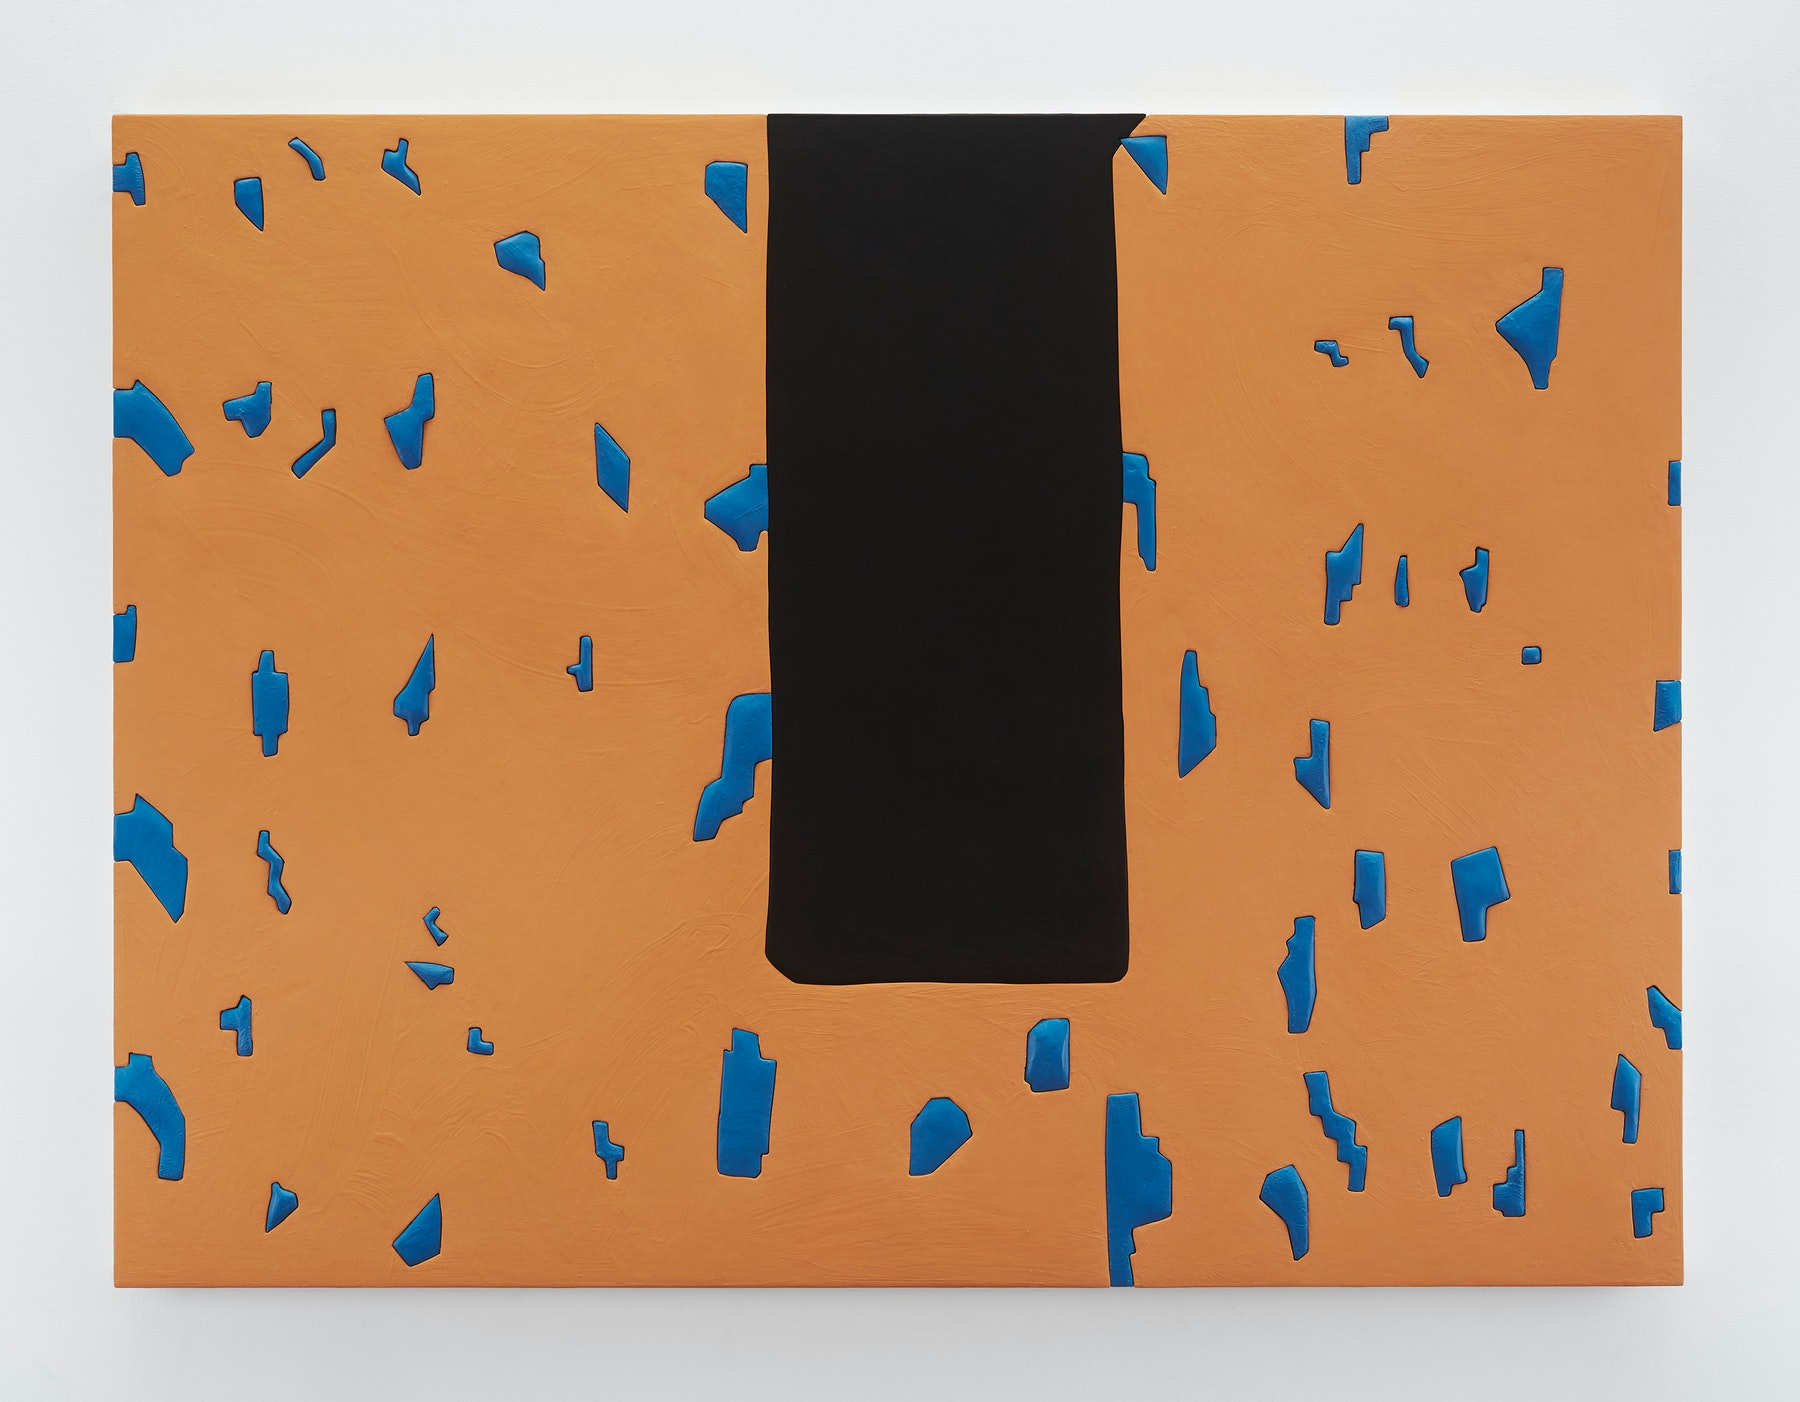 "Sadie Benning ""Untitled 7,"" 2019 Wood, aqua resin, casein, and acrylic gouache 53 x 71"" [HxW] (134.62 x 180.34 cm) Inventory #BEN861 Courtesy of the artist and Vielmetter Los Angeles Photocredit: Chris Austin"